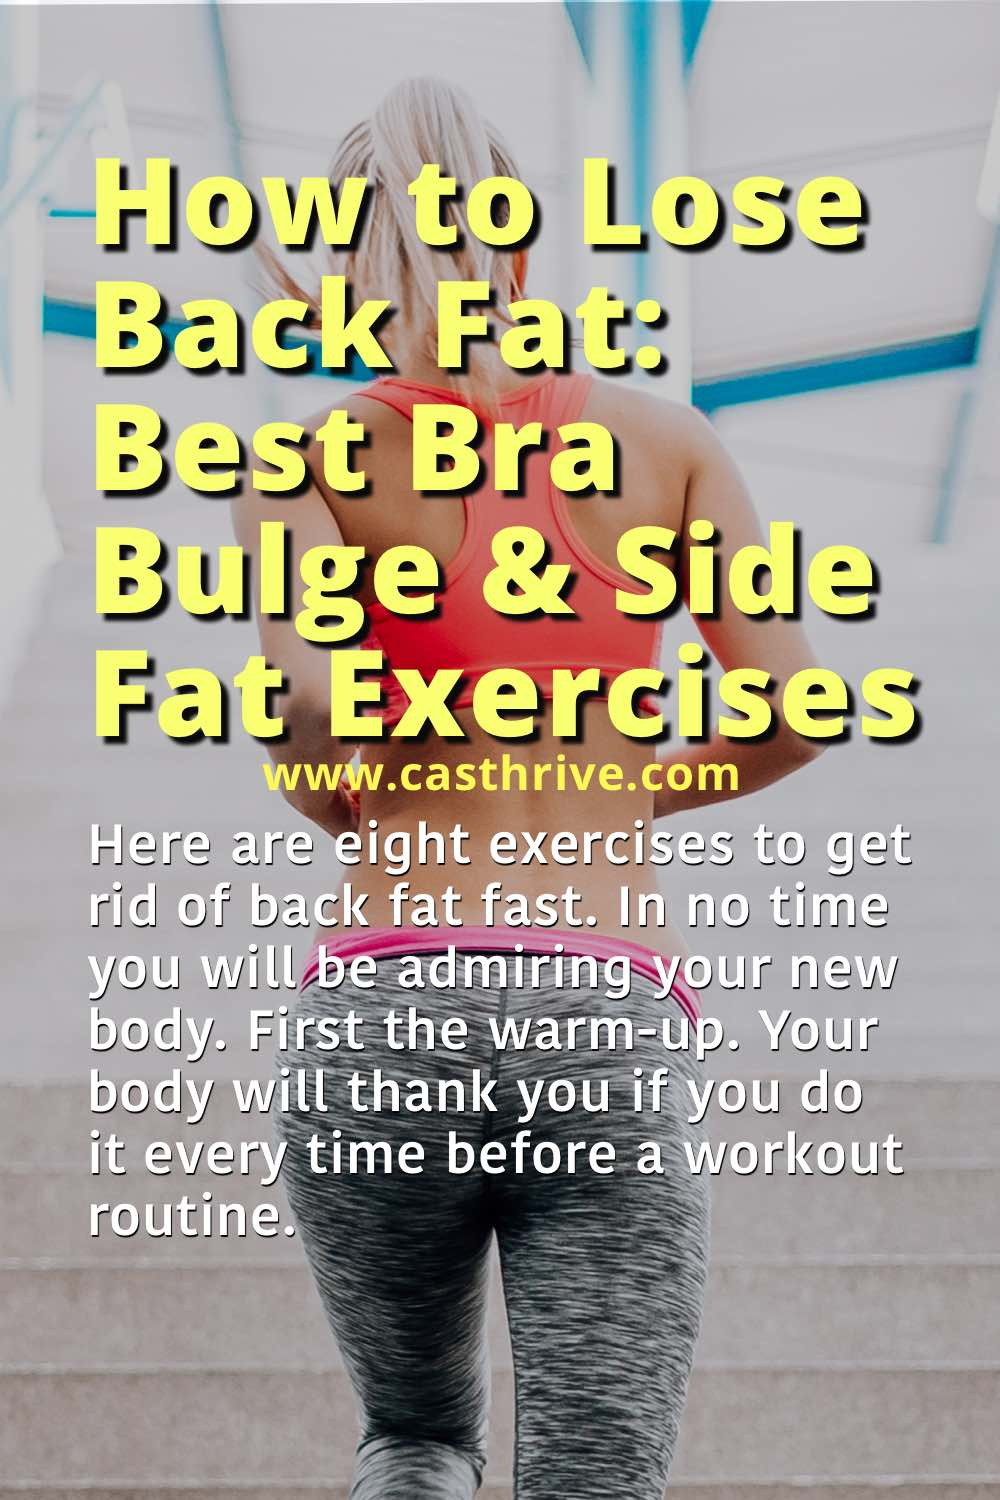 How to Lose Back Fat: The 8 Best Exercises